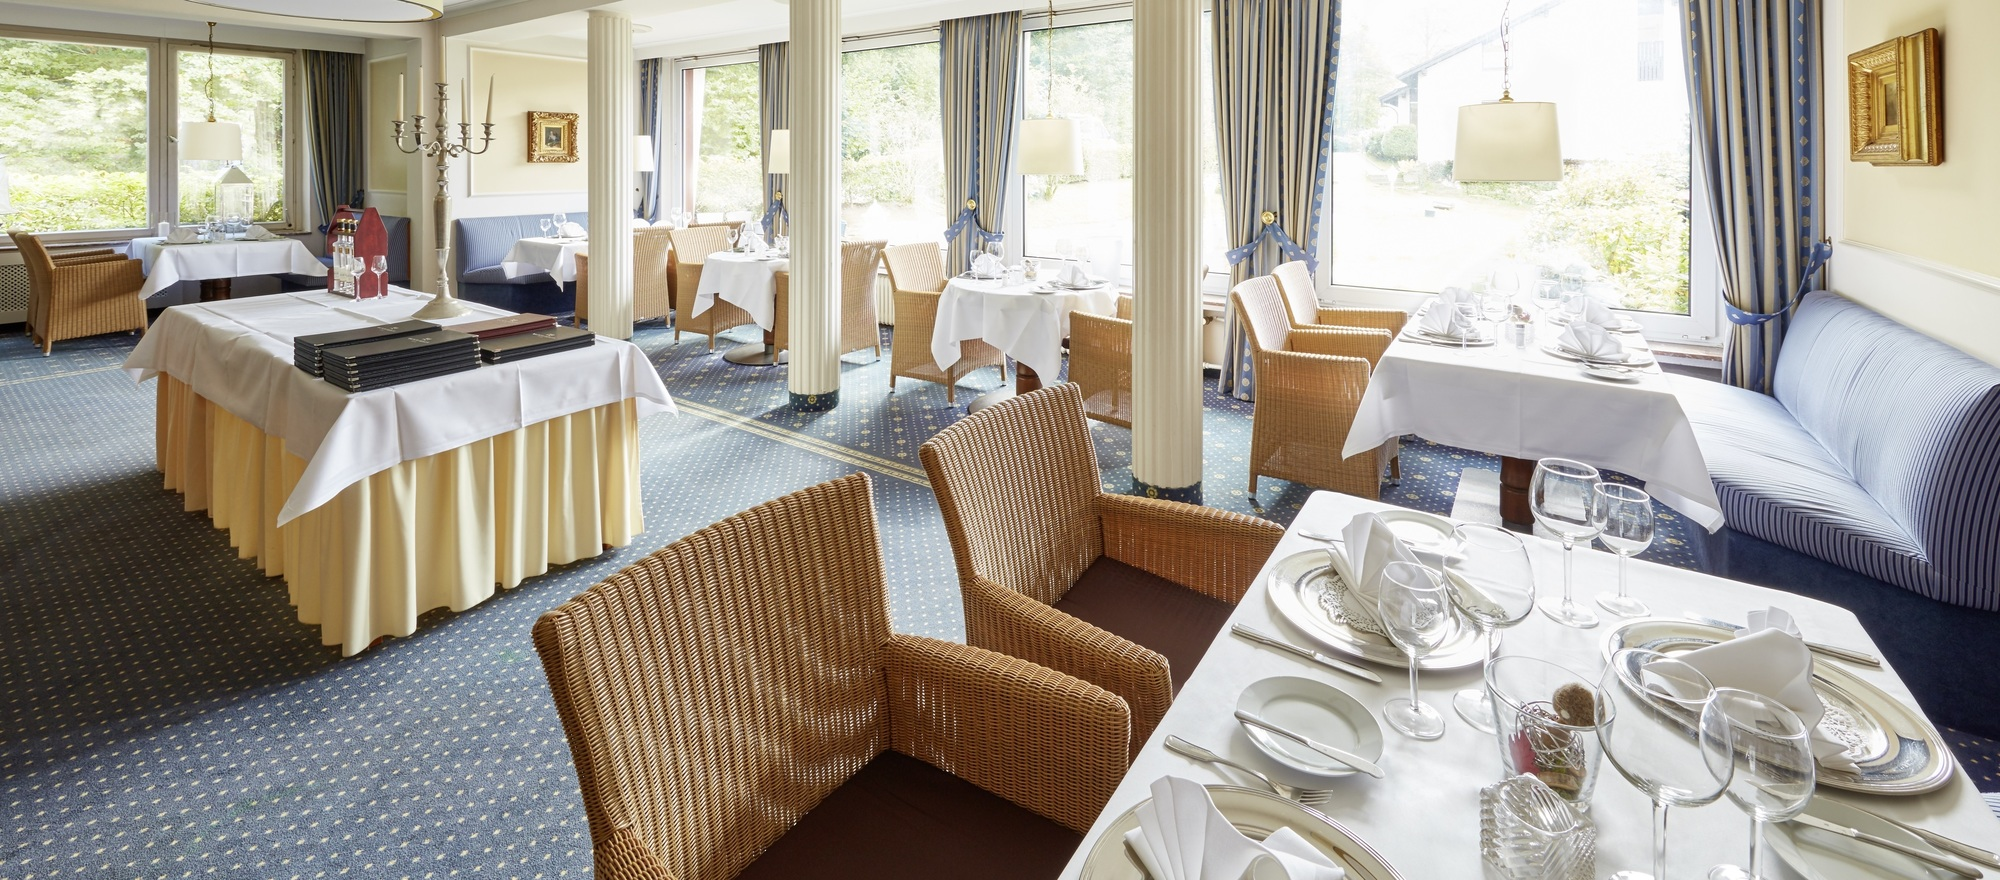 The kitchen of the 4-star hotel Ringhotel Waldhotel Baerenstein in Horn-Bad Meinberg creates a varied cuisine from local and seasonal ingredients